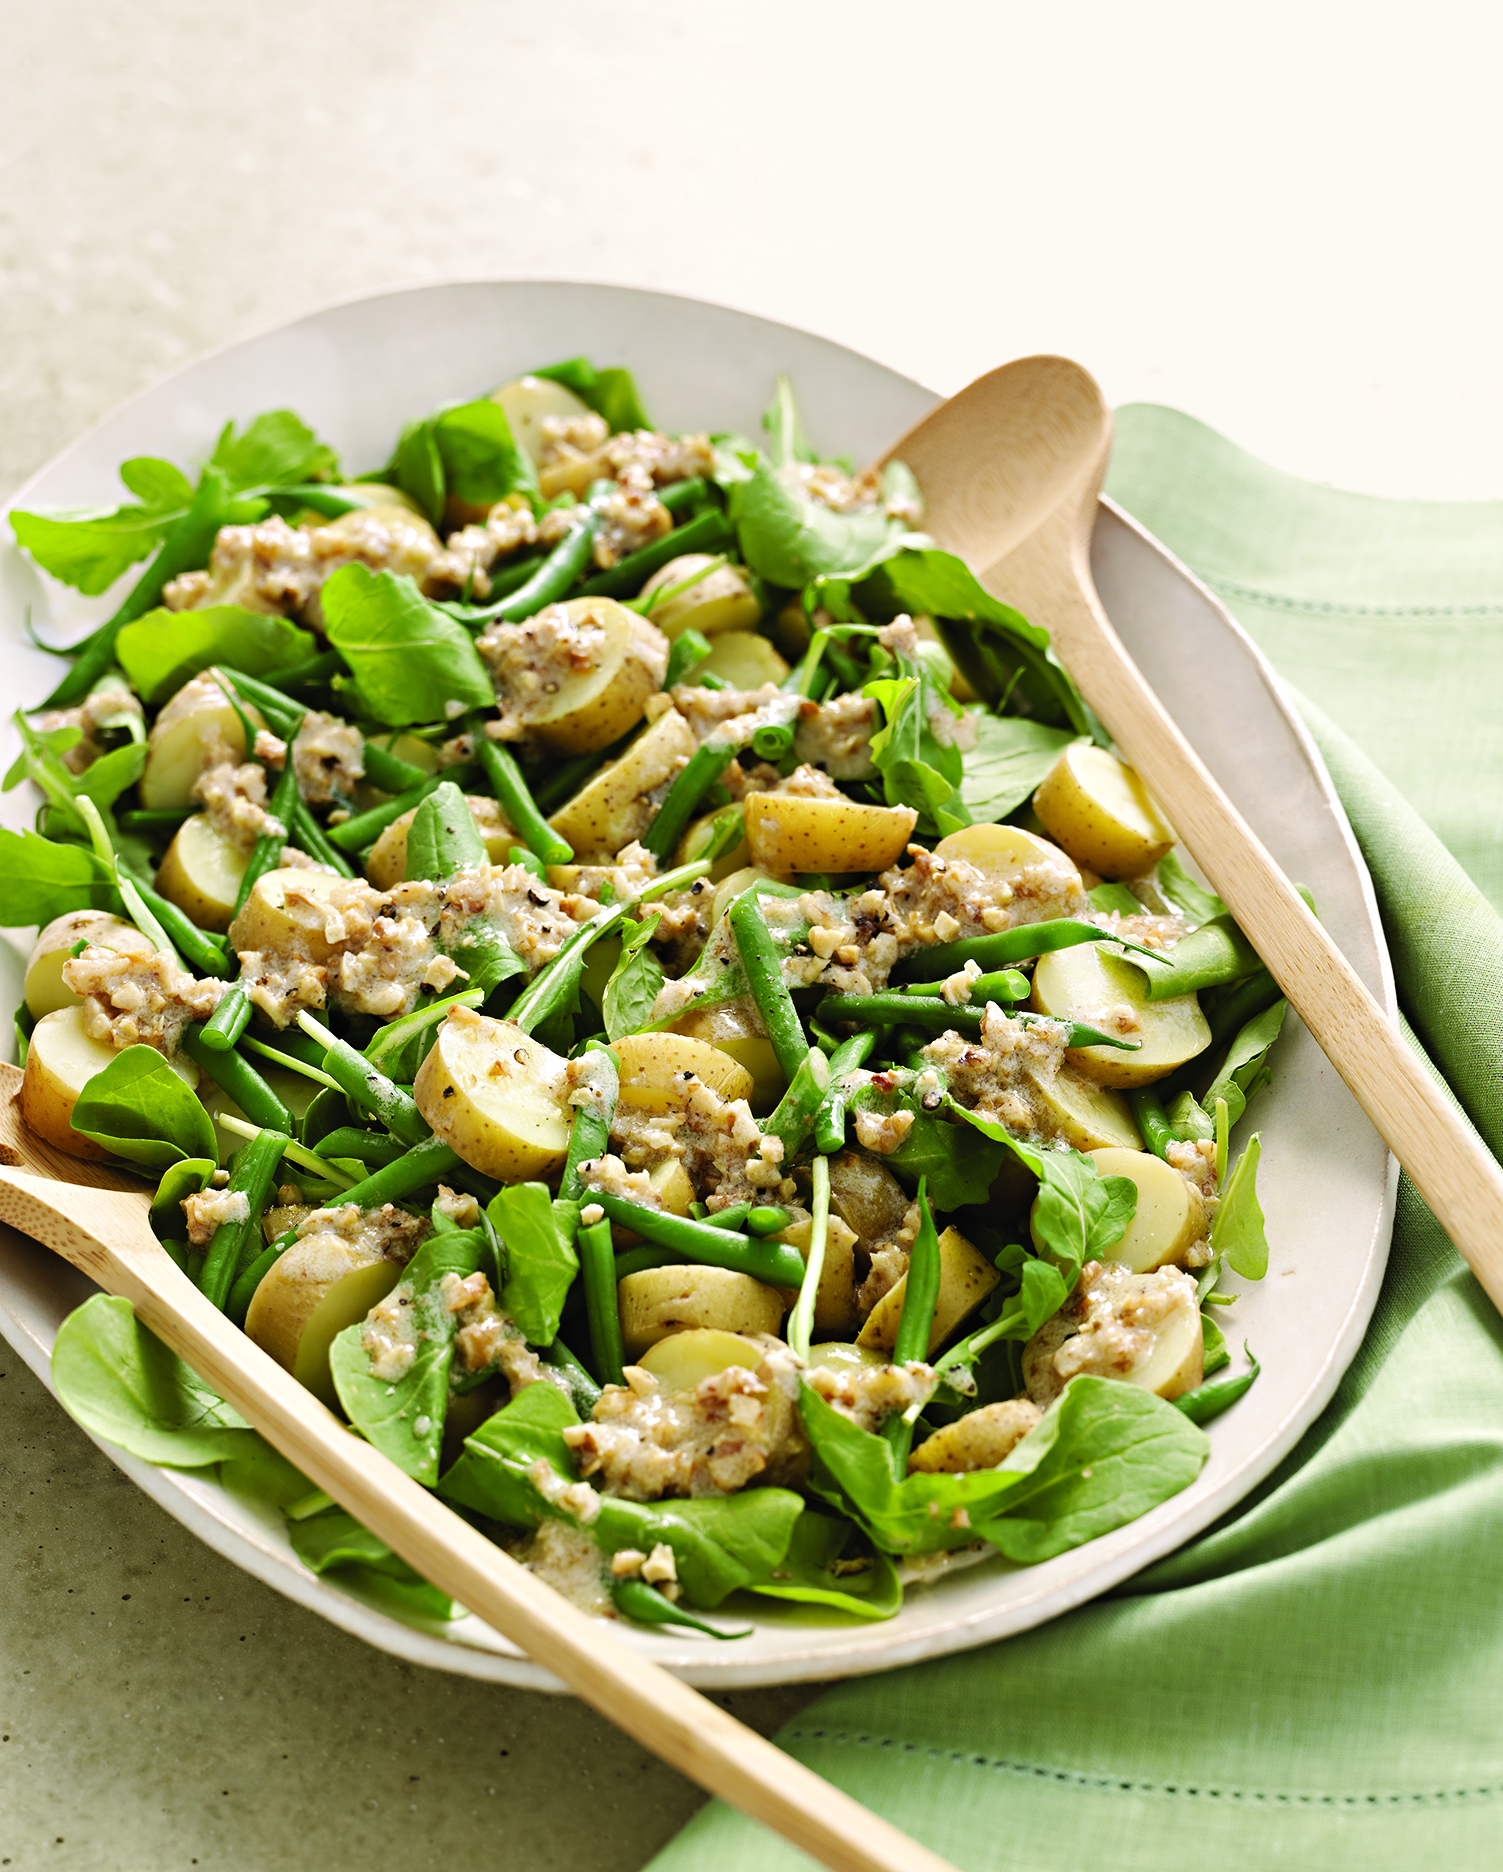 Arugula, Potato, and Green Bean Salad with Walnut Dressing from Meatless by Martha Stewart Living